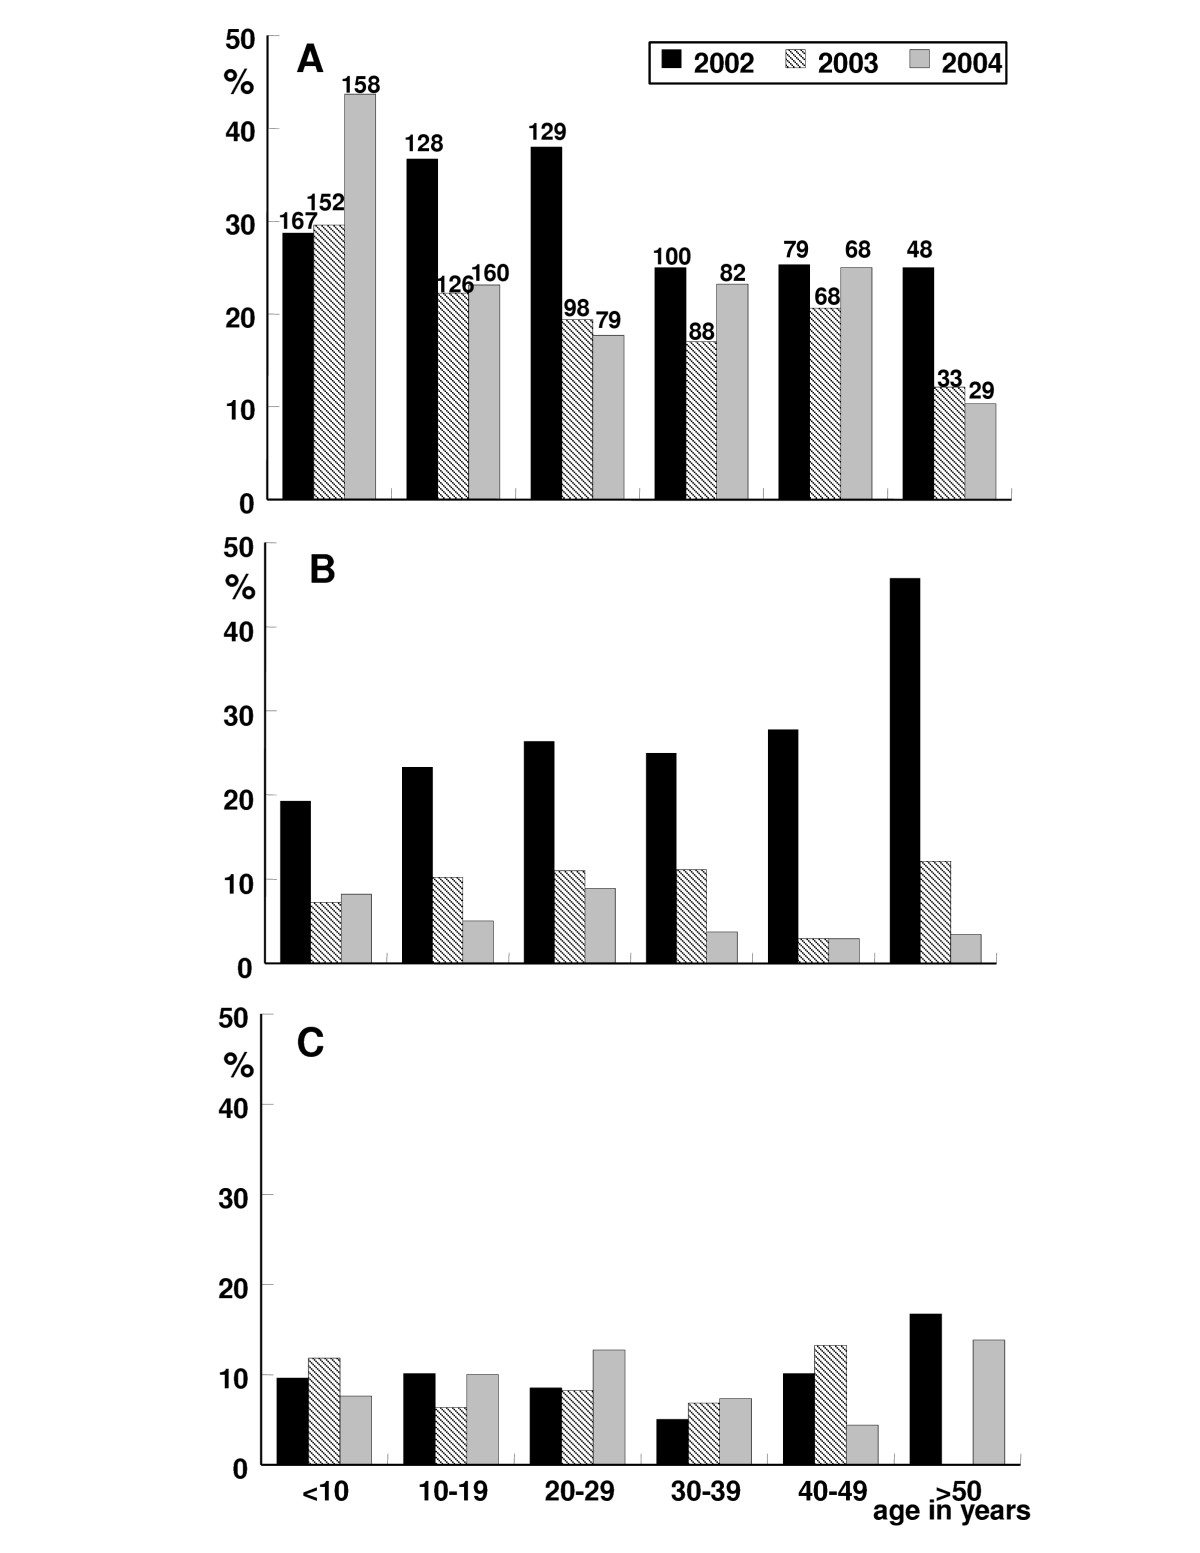 http://static-content.springer.com/image/art%3A10.1186%2F1475-2883-4-5/MediaObjects/13564_2004_Article_42_Fig3_HTML.jpg